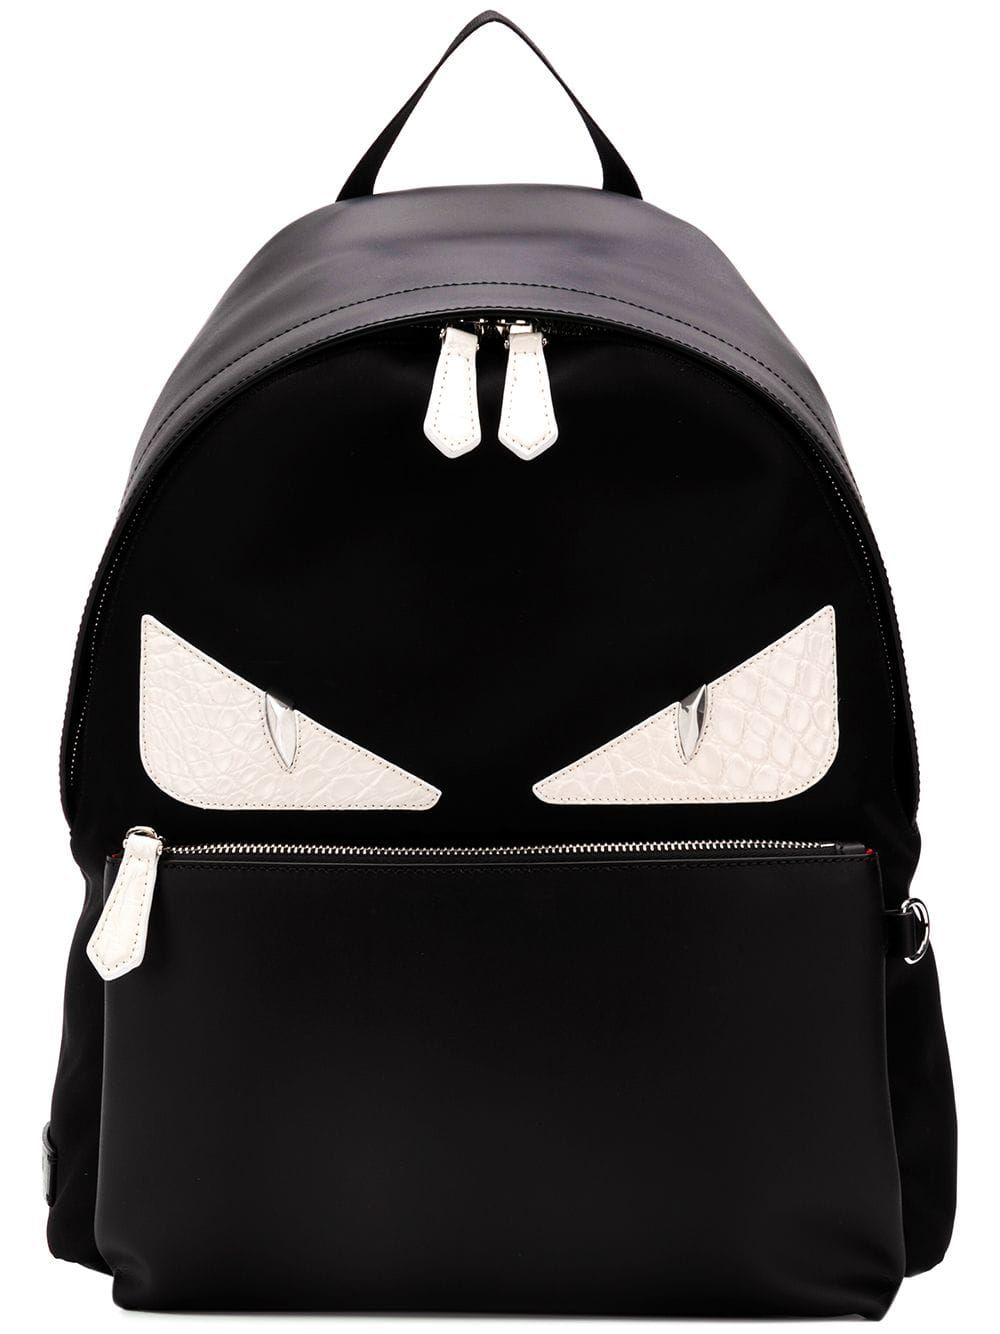 dd99e94551f6 FENDI FENDI EYES PRINTED BACKPACK - BLACK.  fendi  bags  leather  backpacks